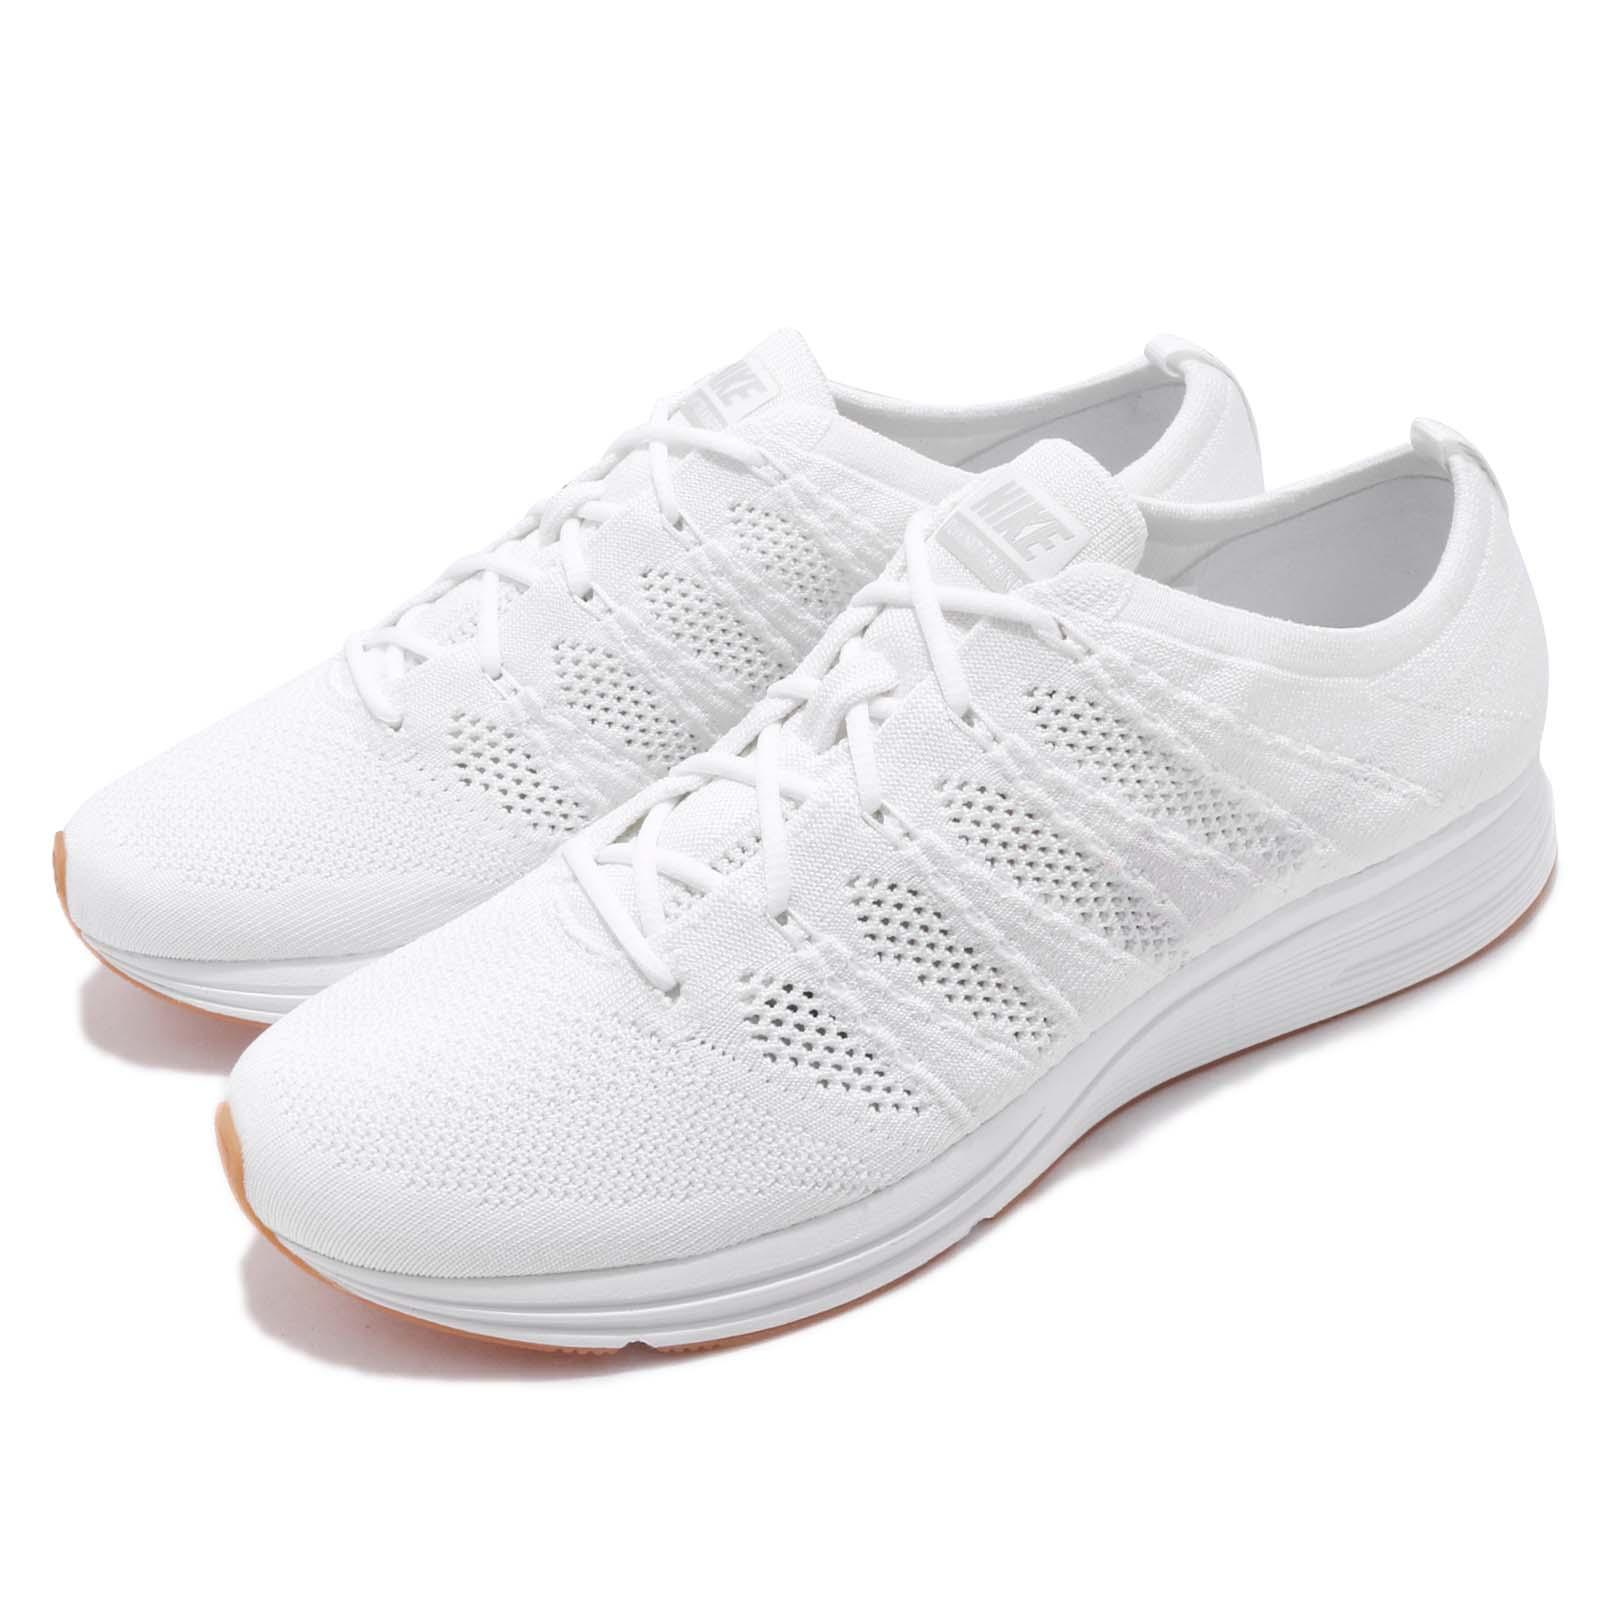 Details about Nike Flyknit Trainer Reflective White Gum Men Running Shoes  Sneakers AH8396-102 d5e495eb3